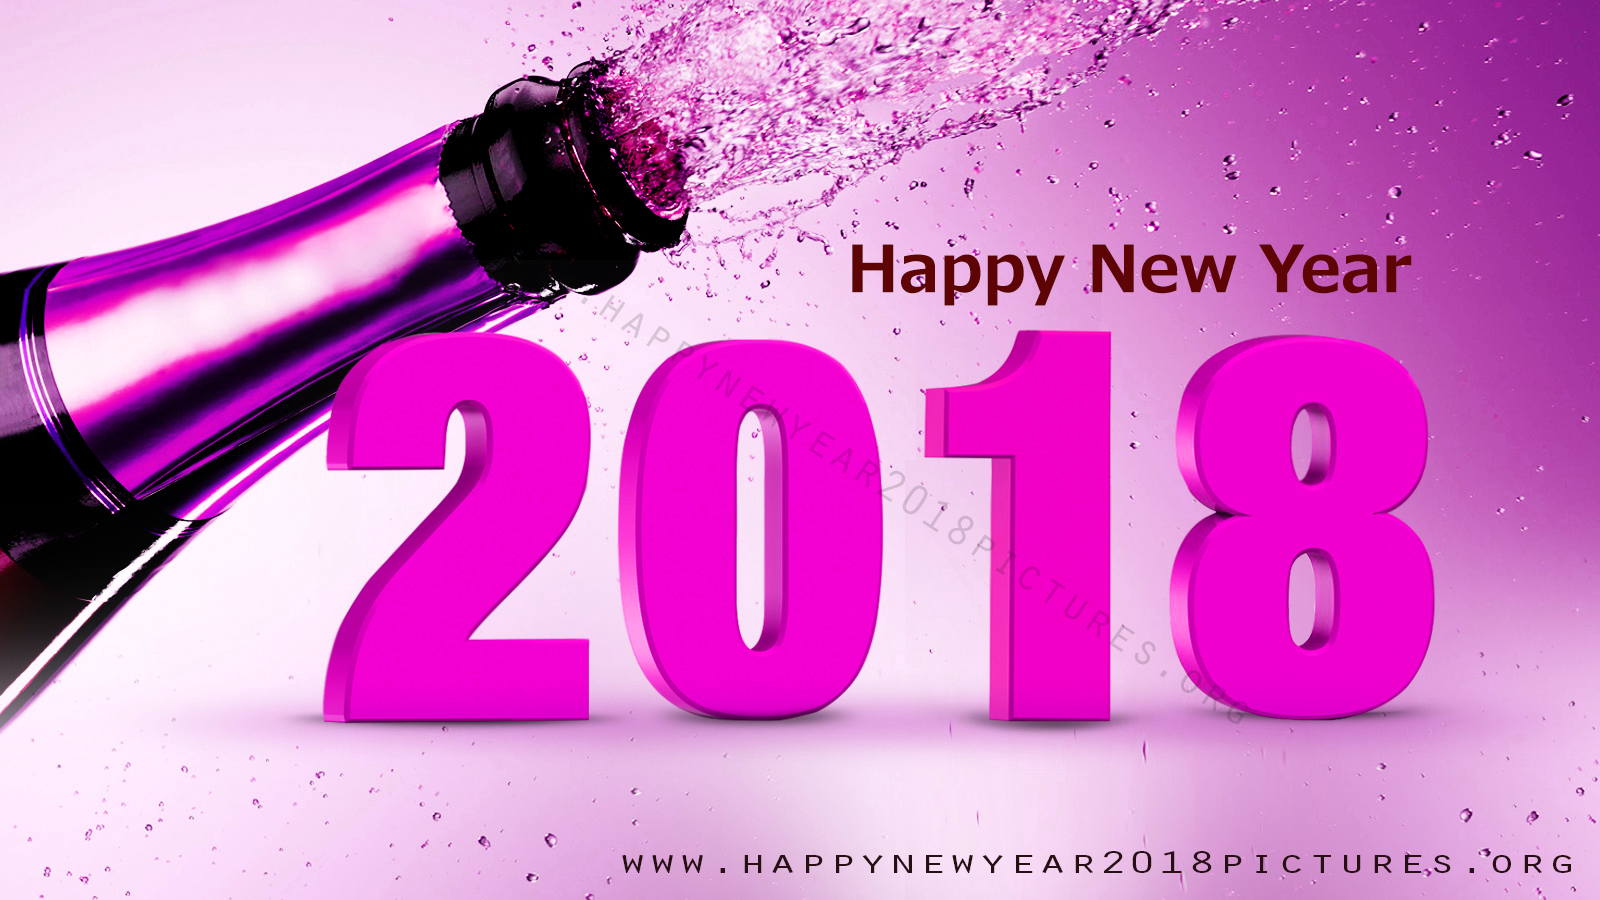 before traveling to the cavalcade i appetite you a absolute admirable happy new year 2018 for all our affectionate readers aswell subscribe to our email